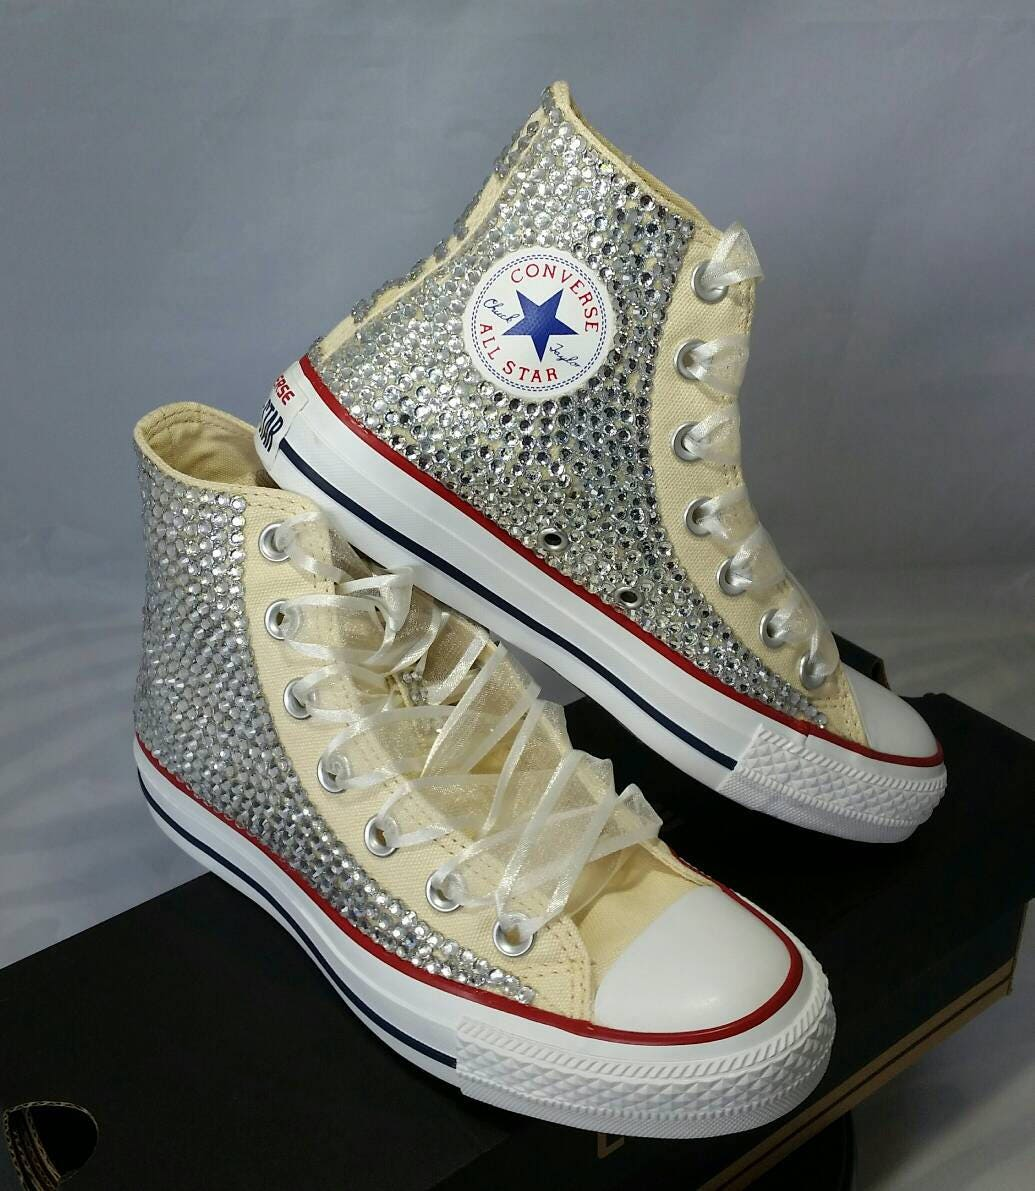 Full Bling Wedding Converse Bridal Sneakers Custom Converse Etsy